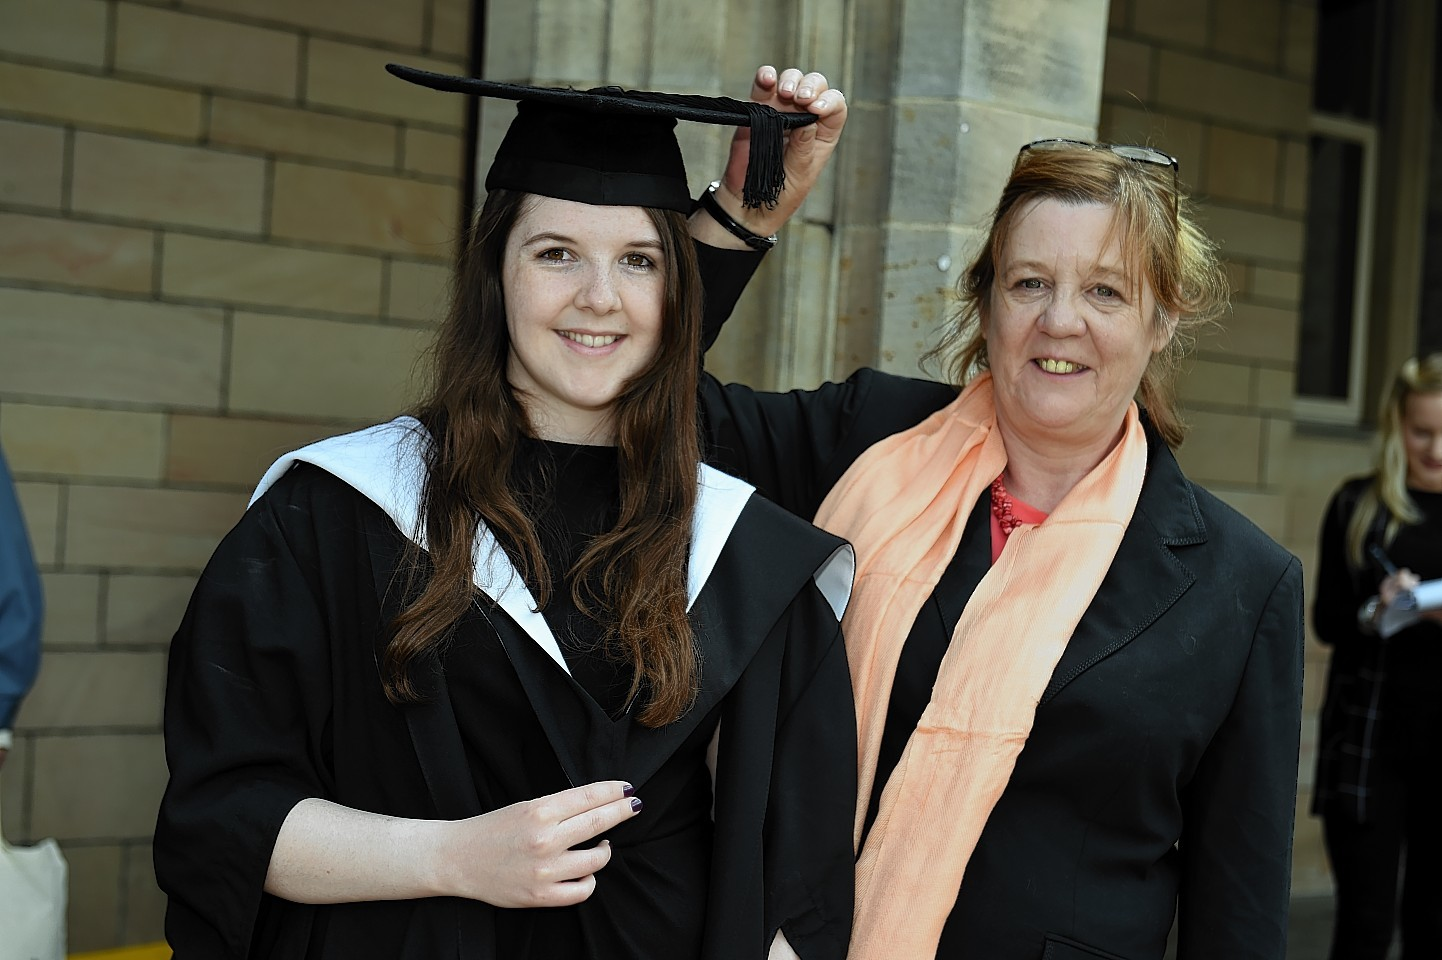 Lily Scanlon celebrates graduating at Elphinstone Hall with mother  Jacqui. Picture by Kenny Elrick